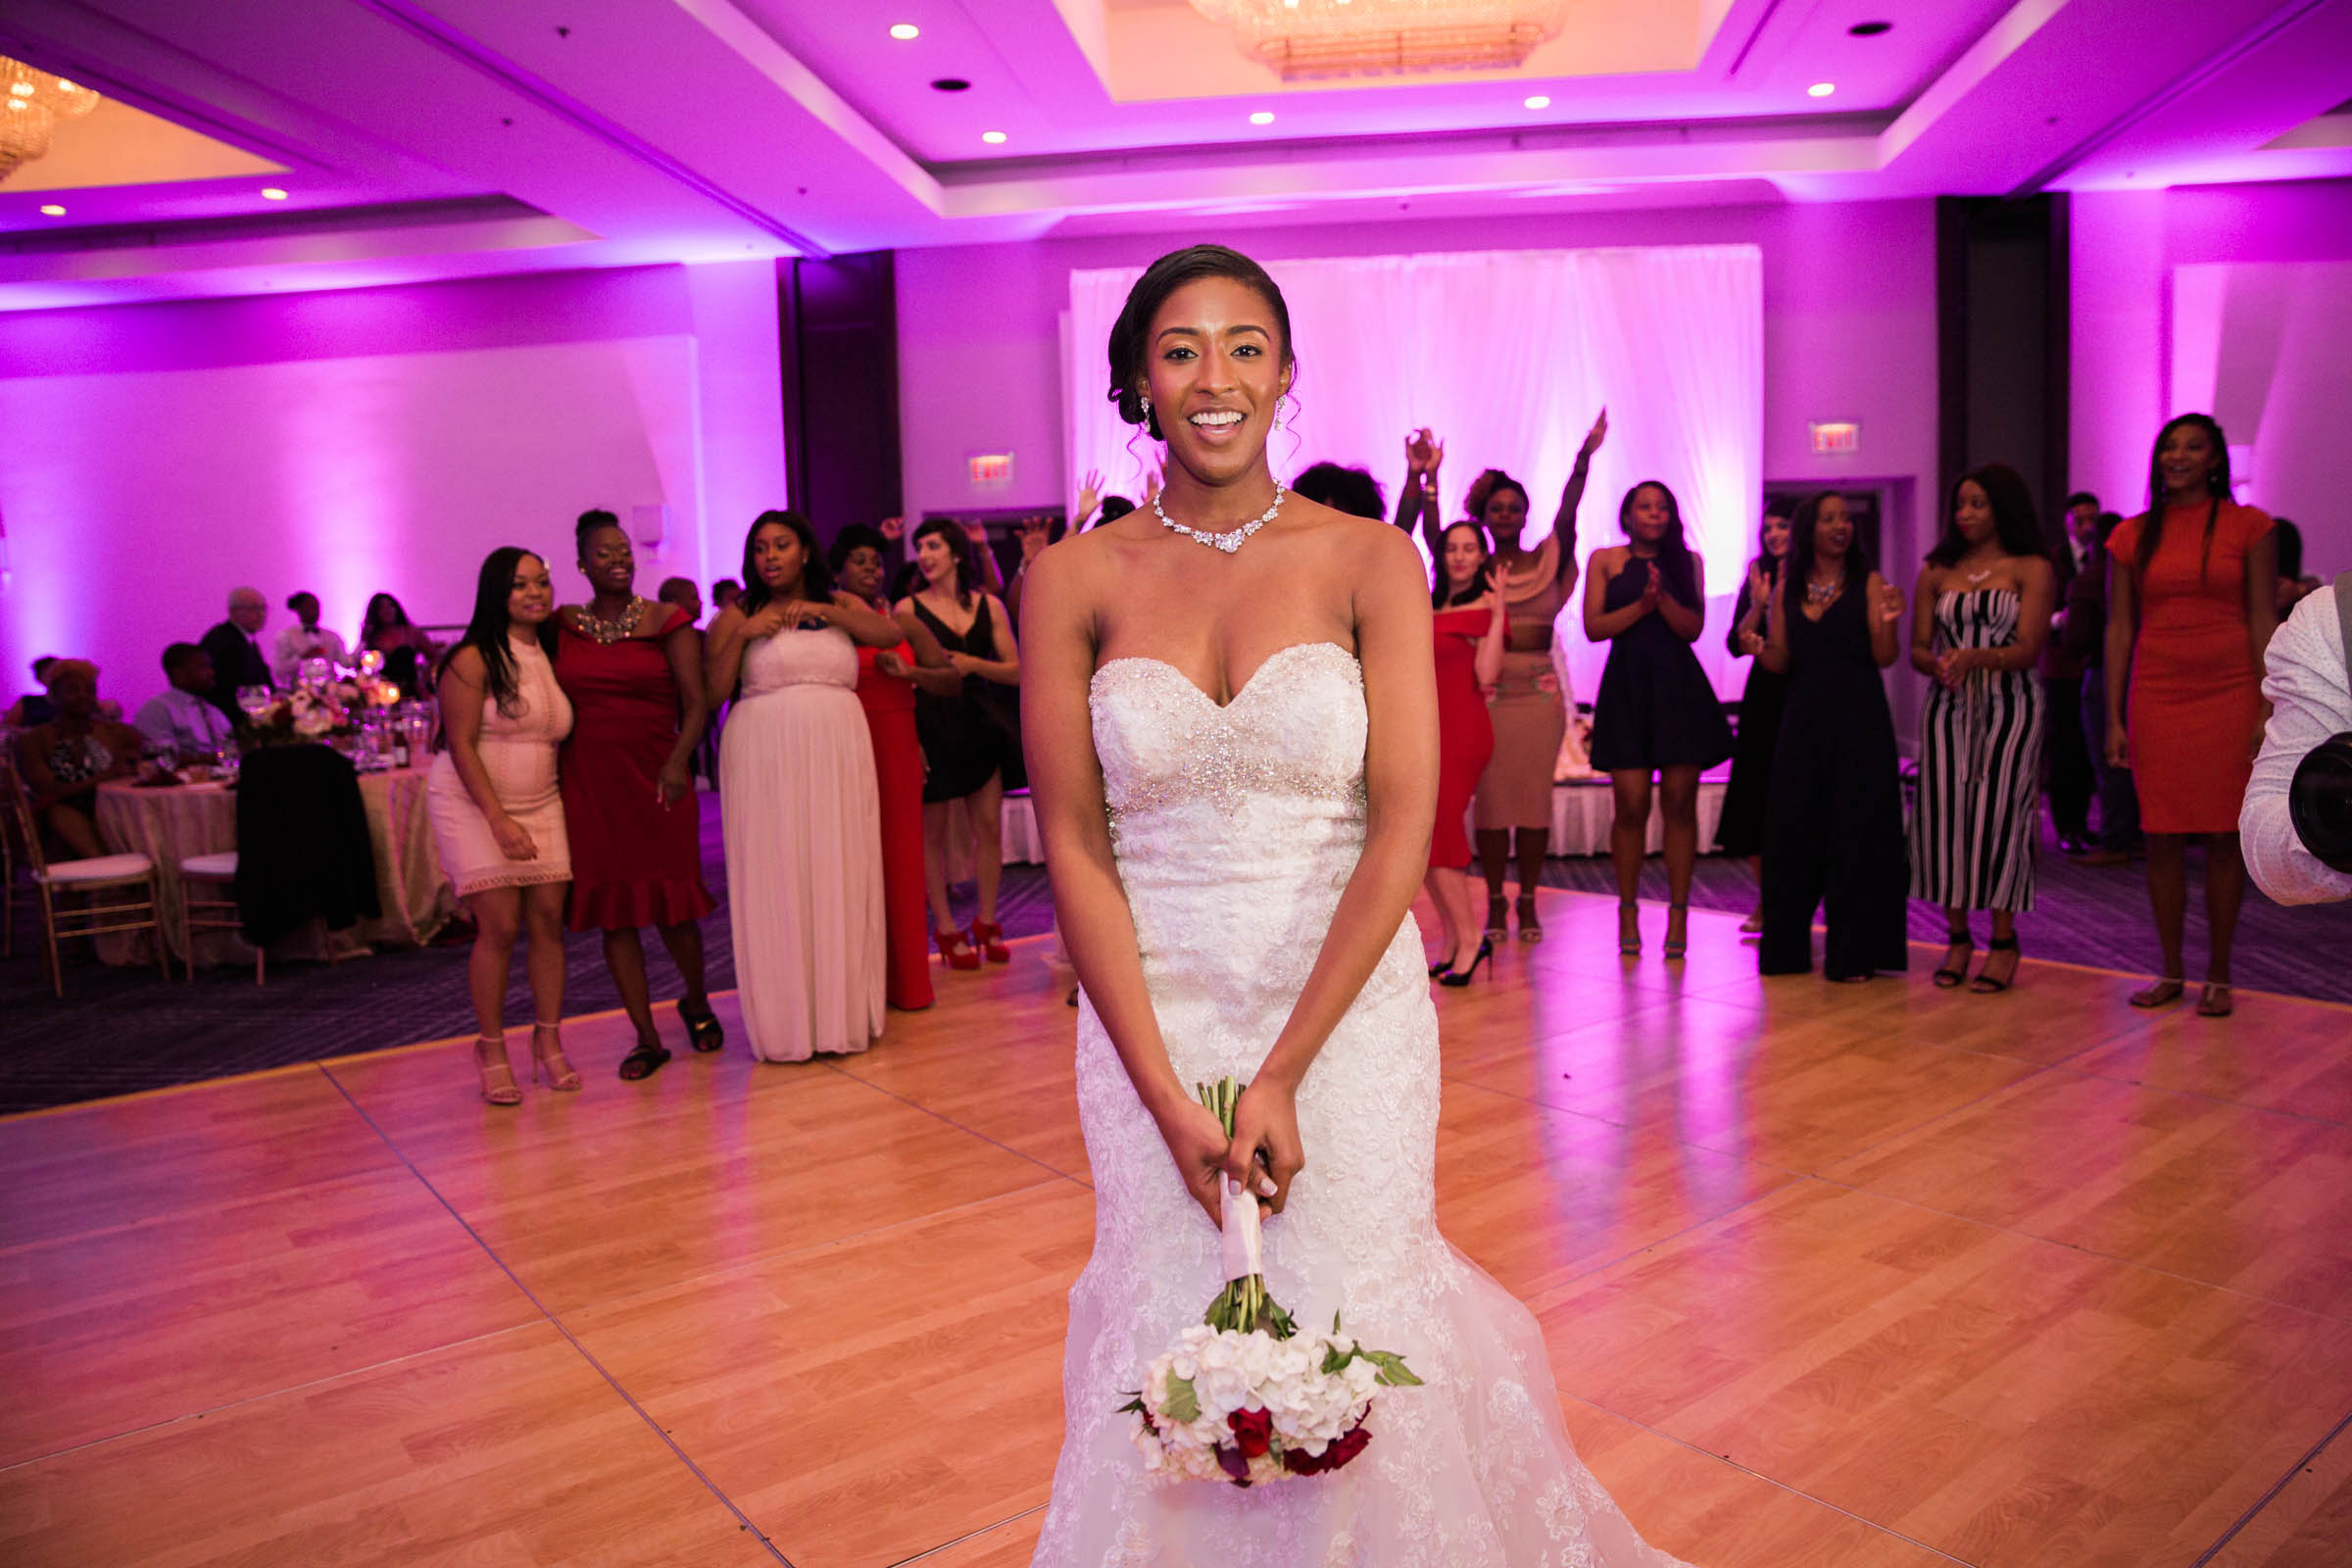 Black Bride Dream Wedding at  Hyatt Regency Fairfax Virginia Husband and Wife Wedding Photographers Megapixels Media Photography (87 of 104).jpg